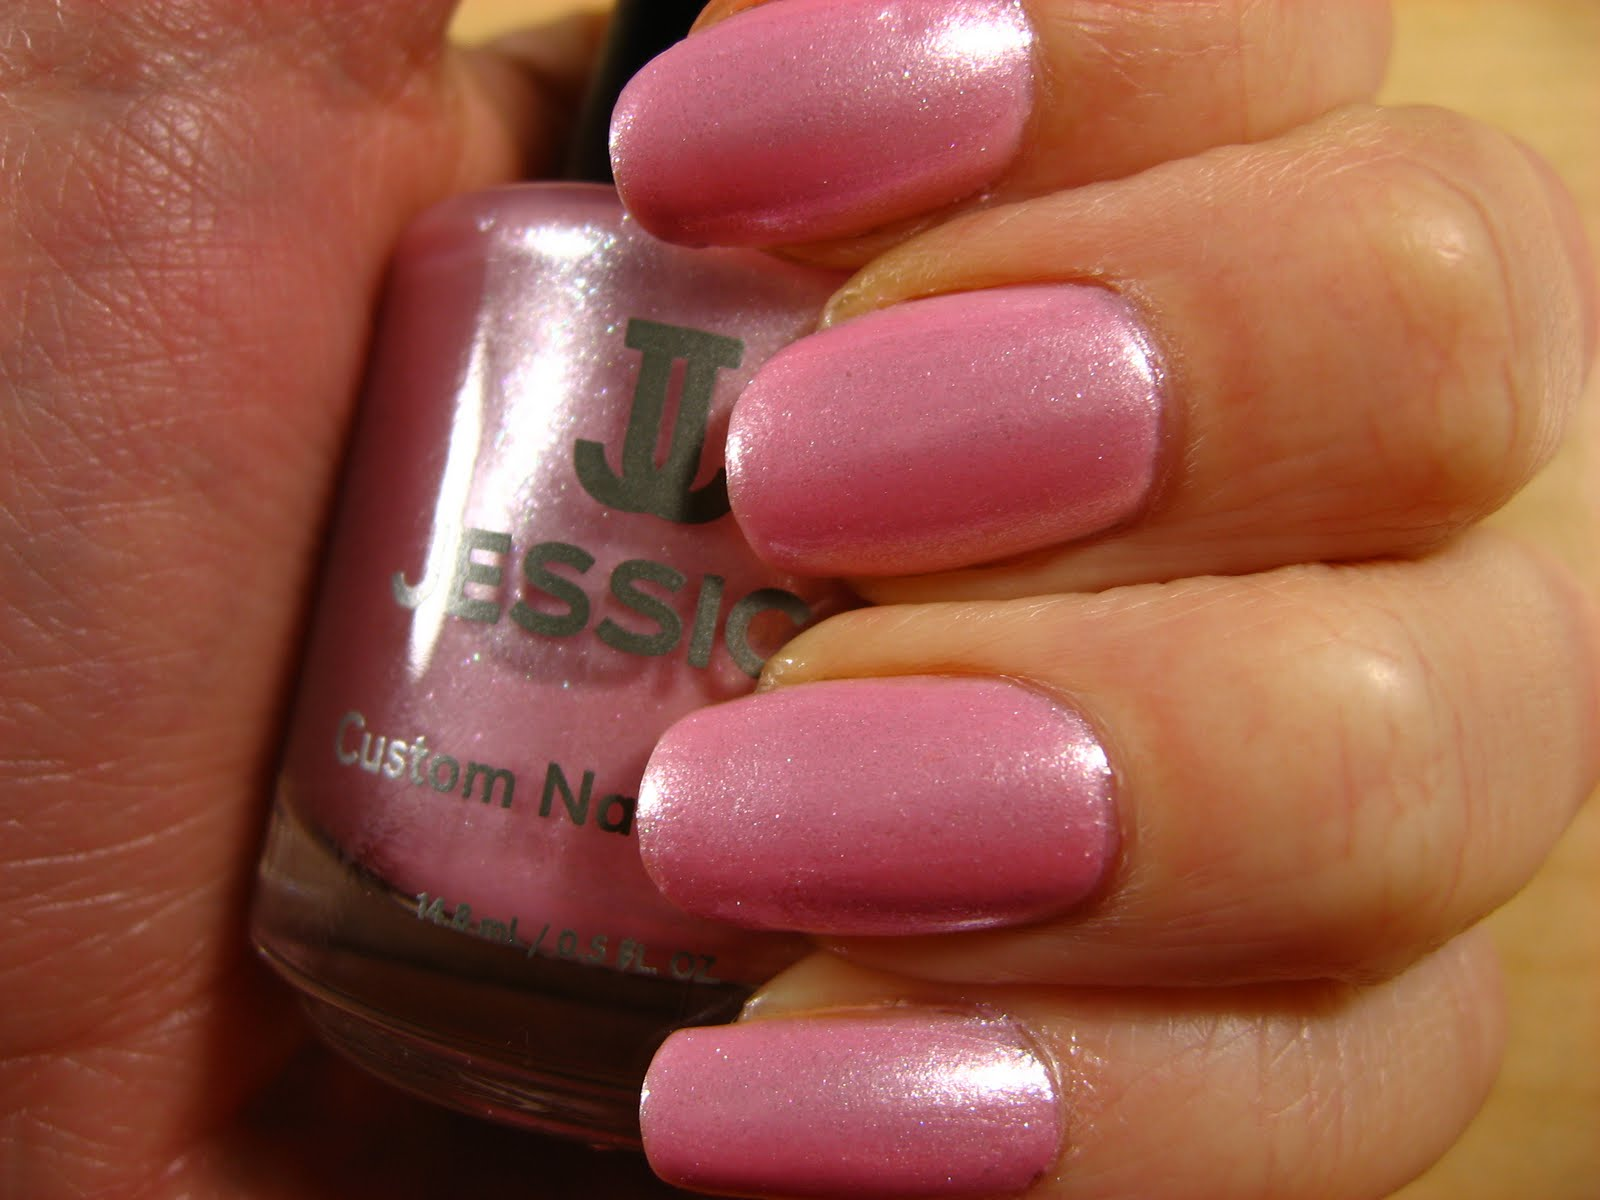 Right on the Nail: Jessica Cosmetics Daydream Spring 2010: Starry Eyed